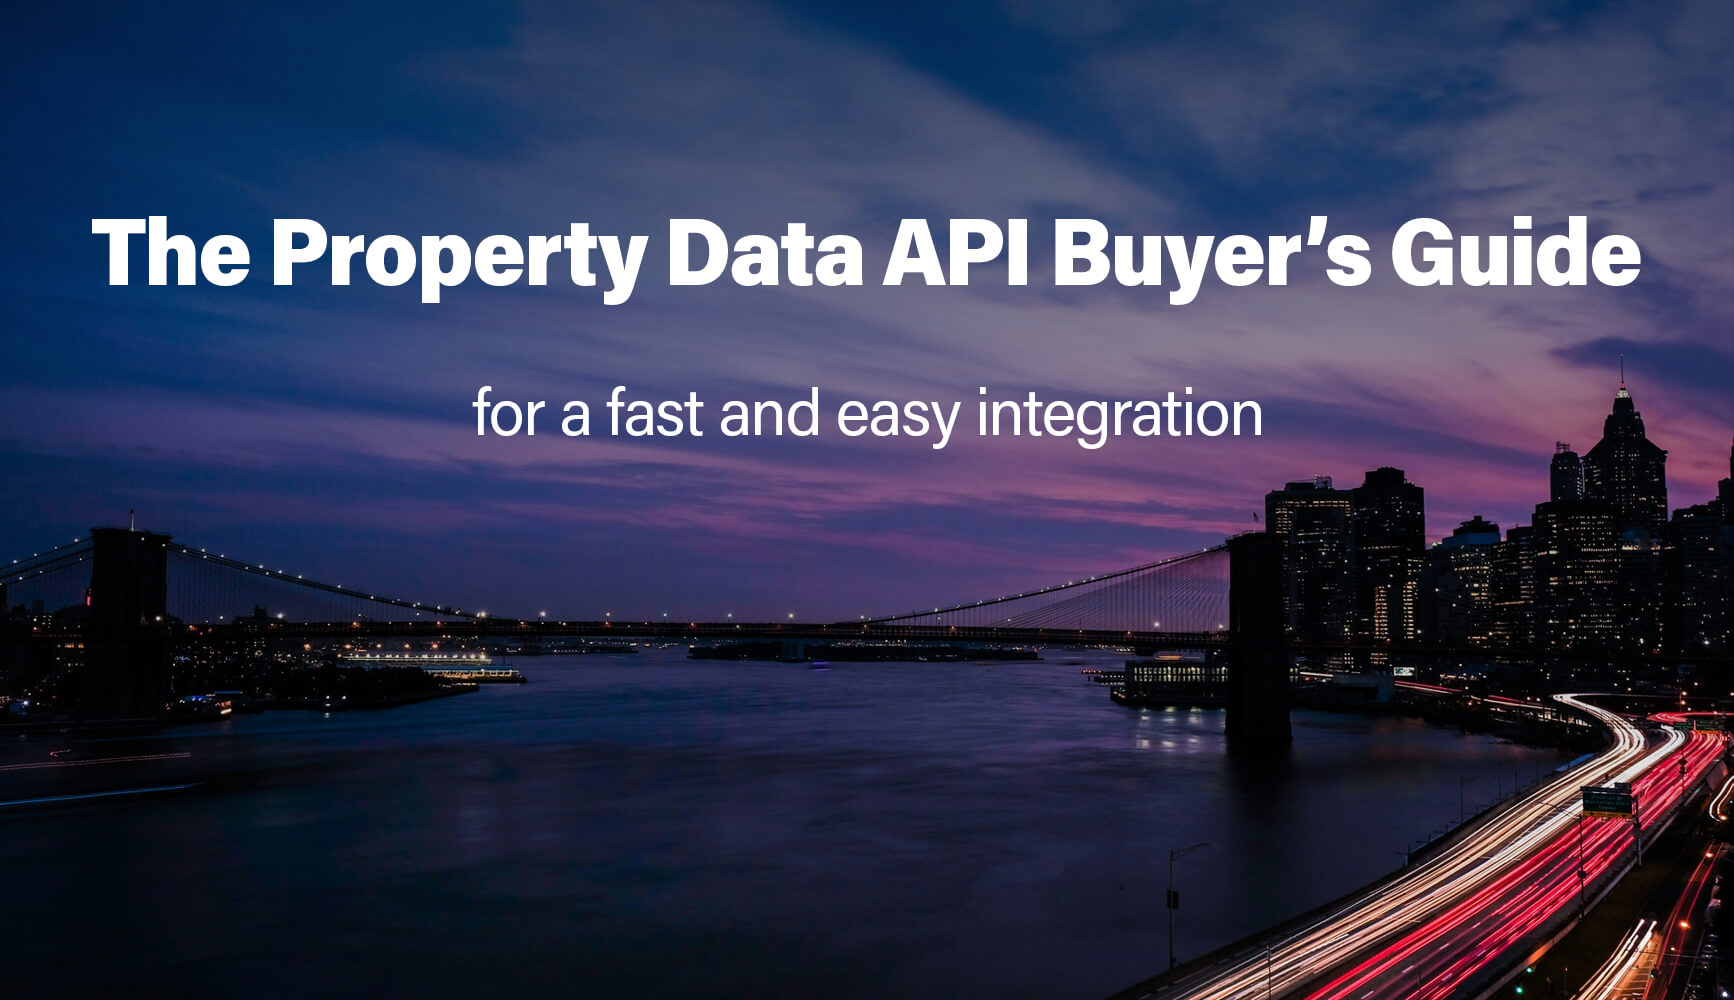 The Property Data API Buyer's Guide - Part 1